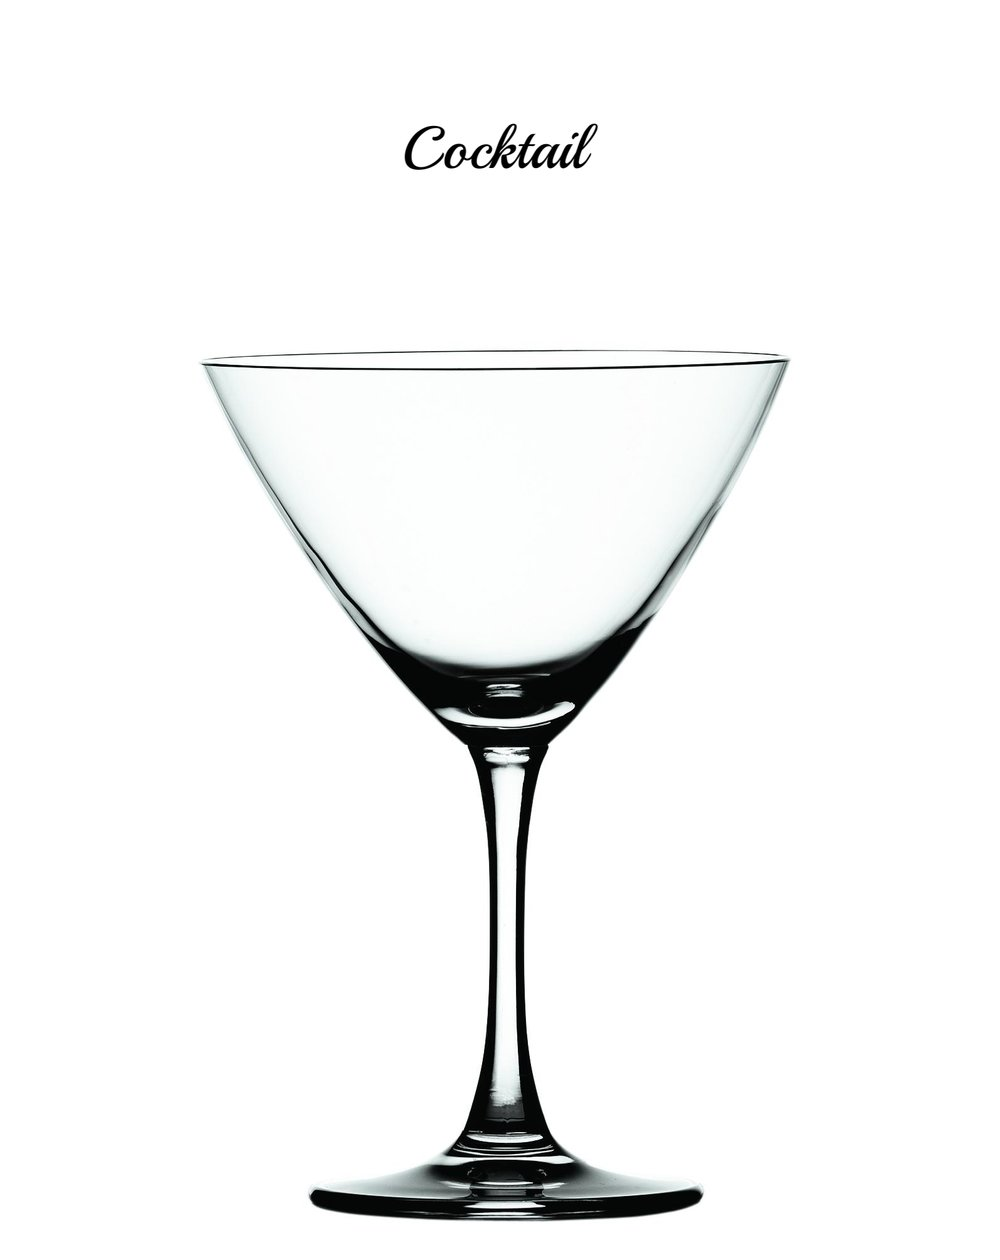 4070173 Cocktail.jpg